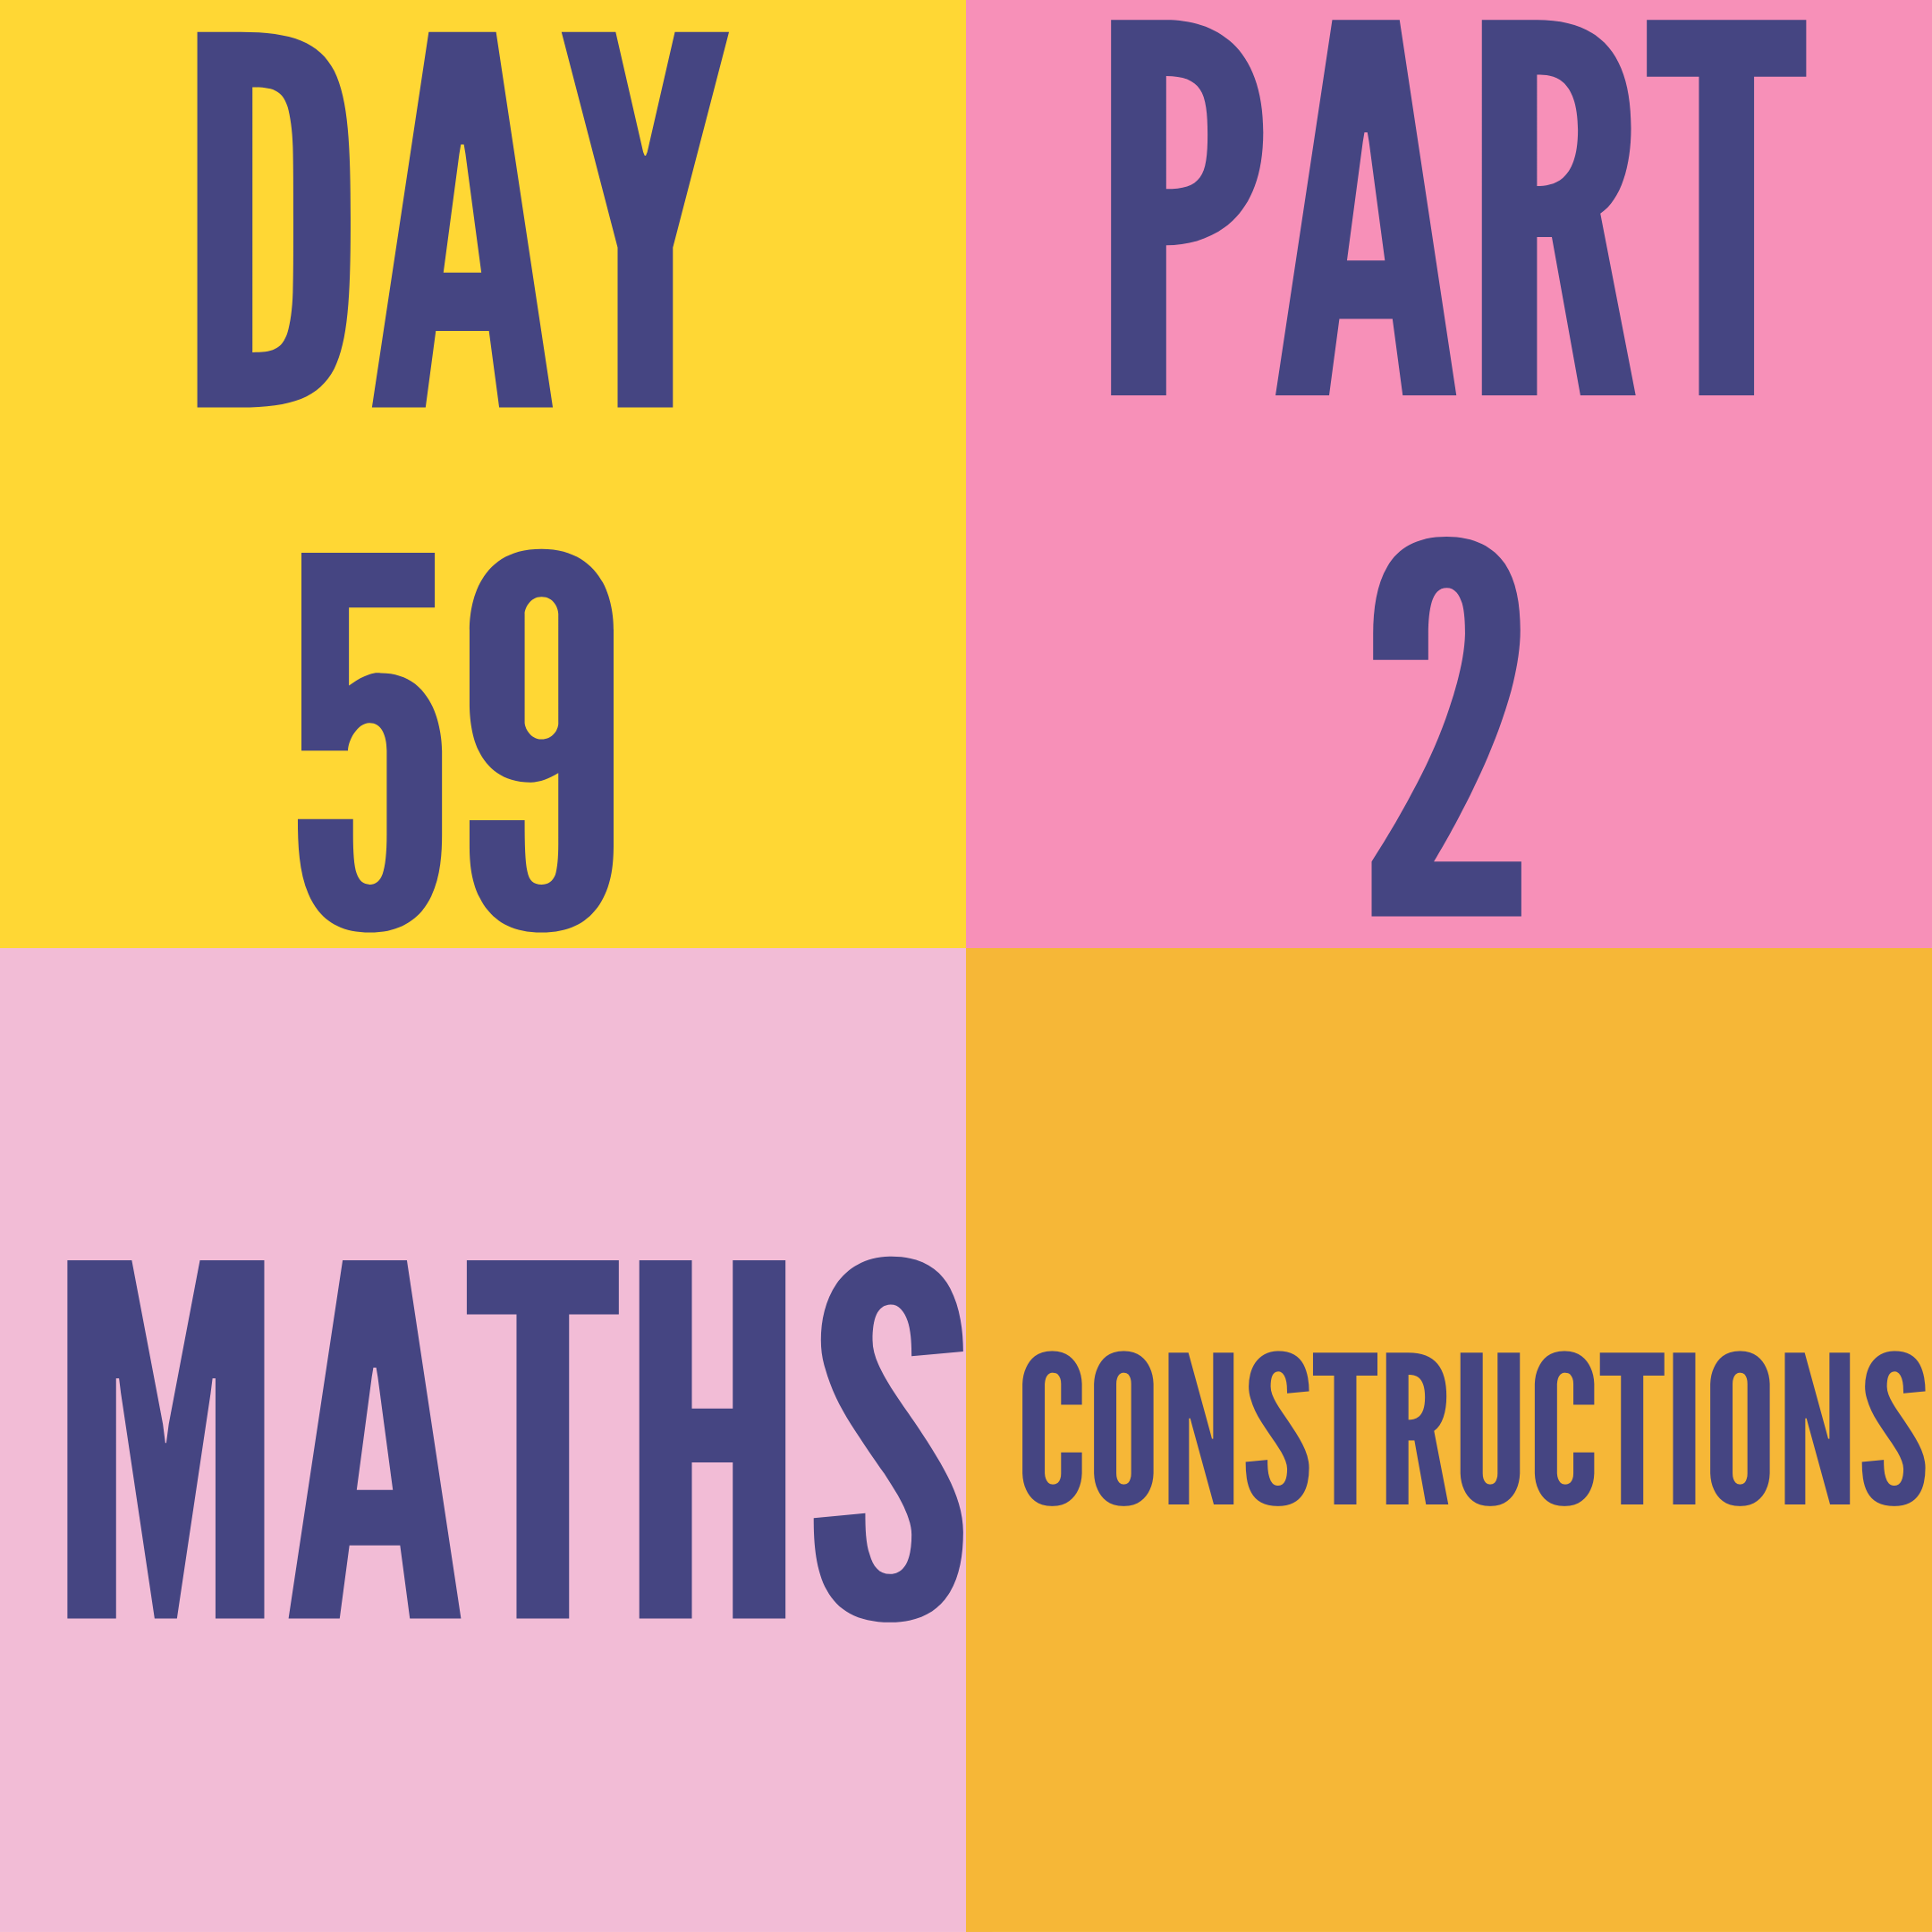 DAY-59 PART-2 CONSTRUCTIONS